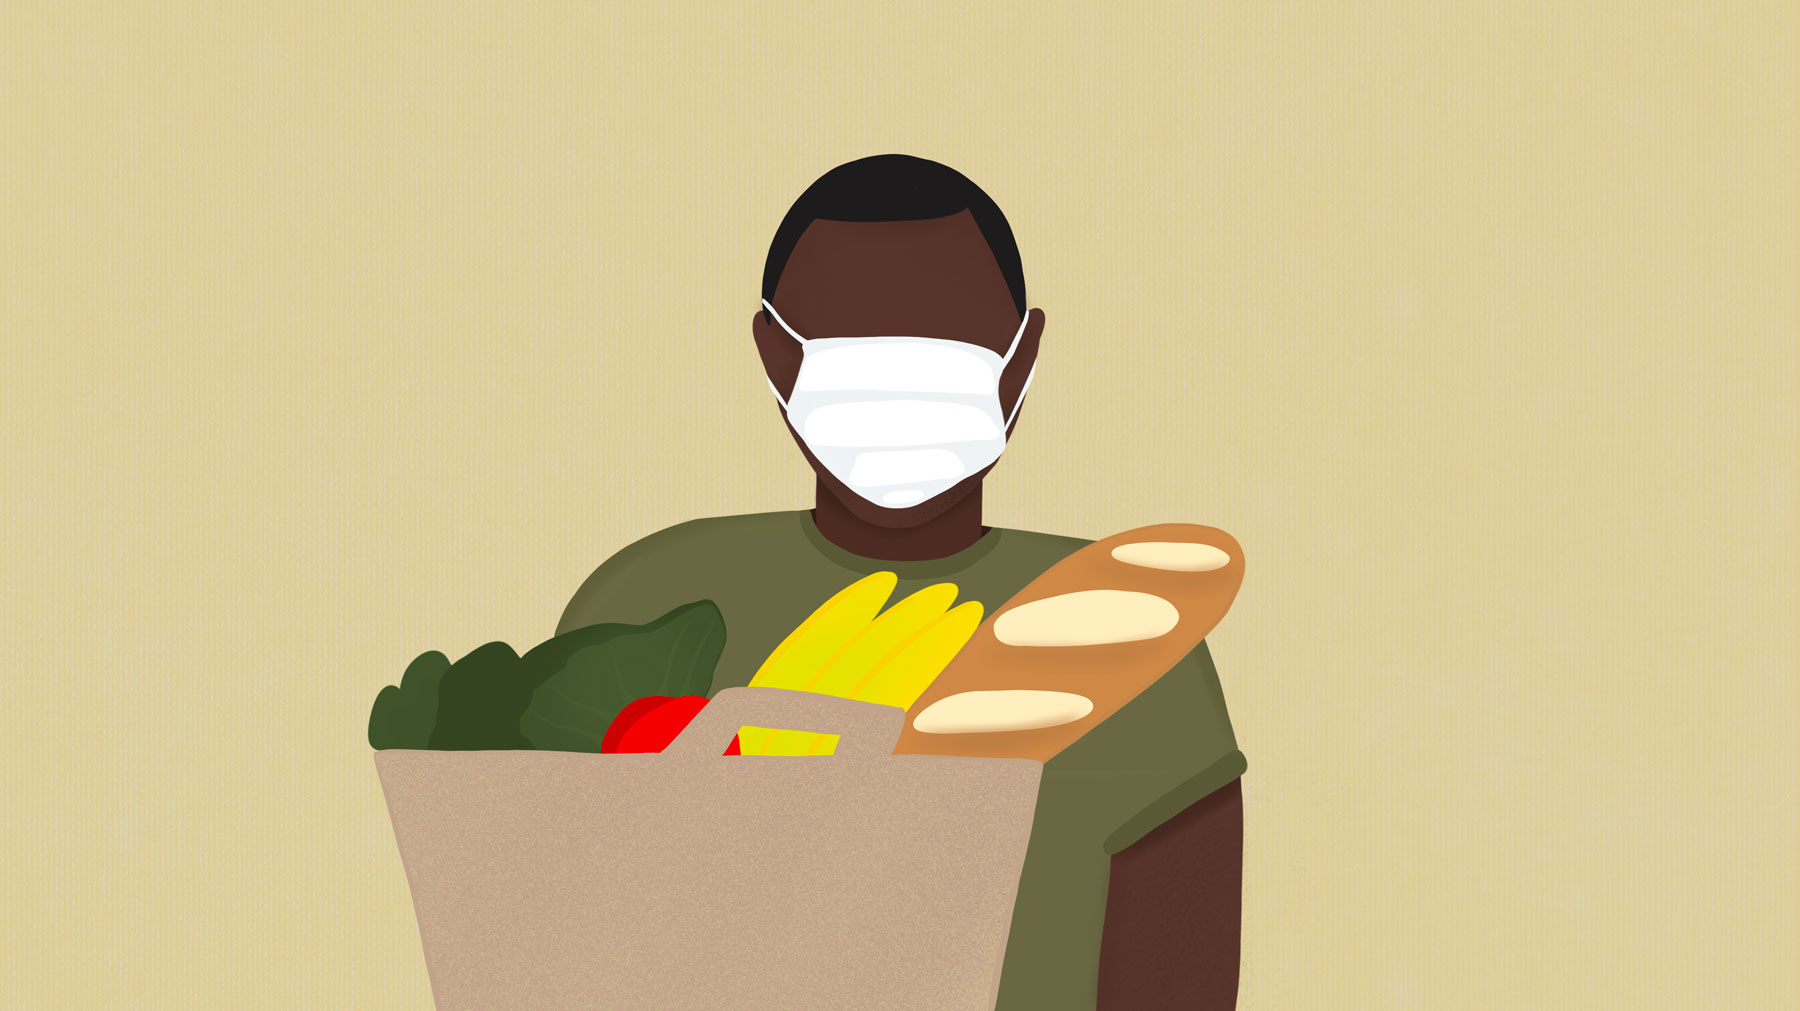 finding a job during a pandemic